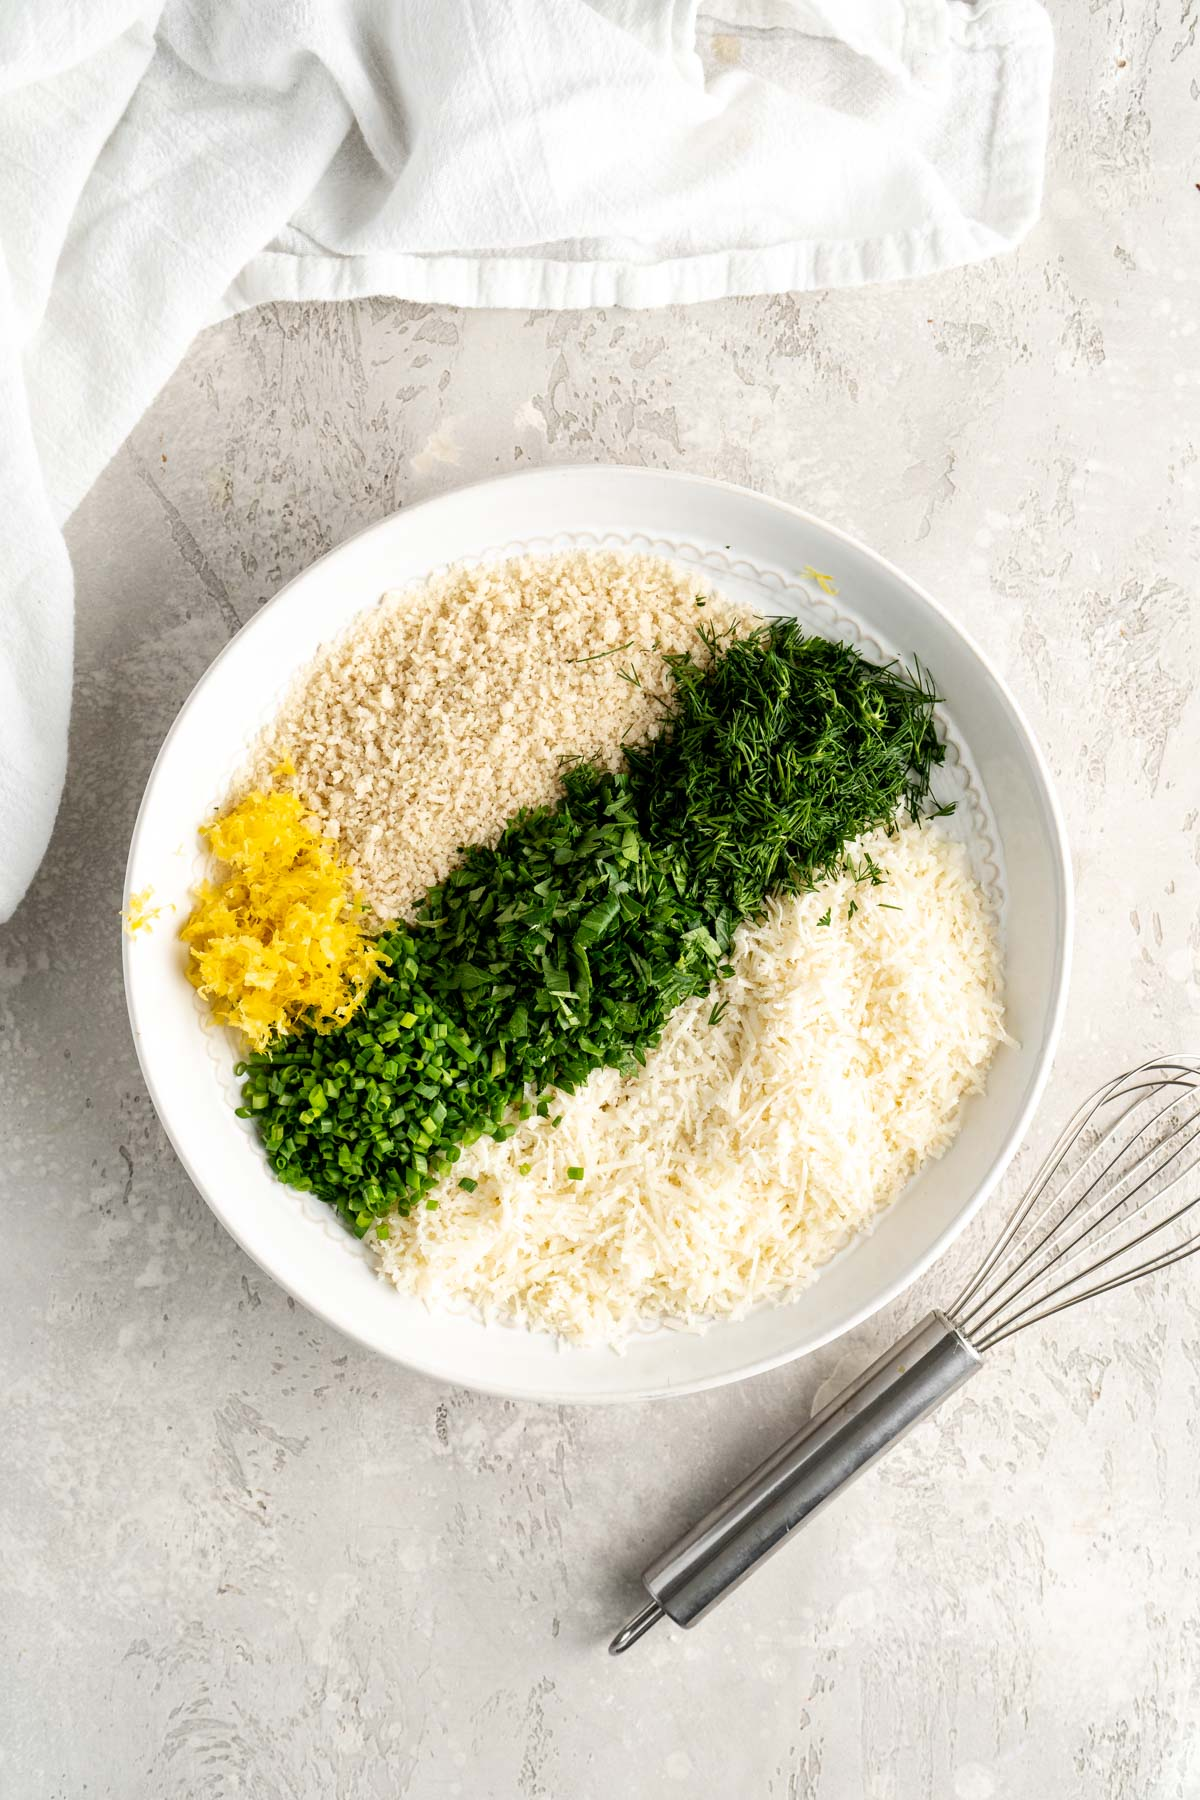 fresh herbs and panko bread crumbs in a white bowl